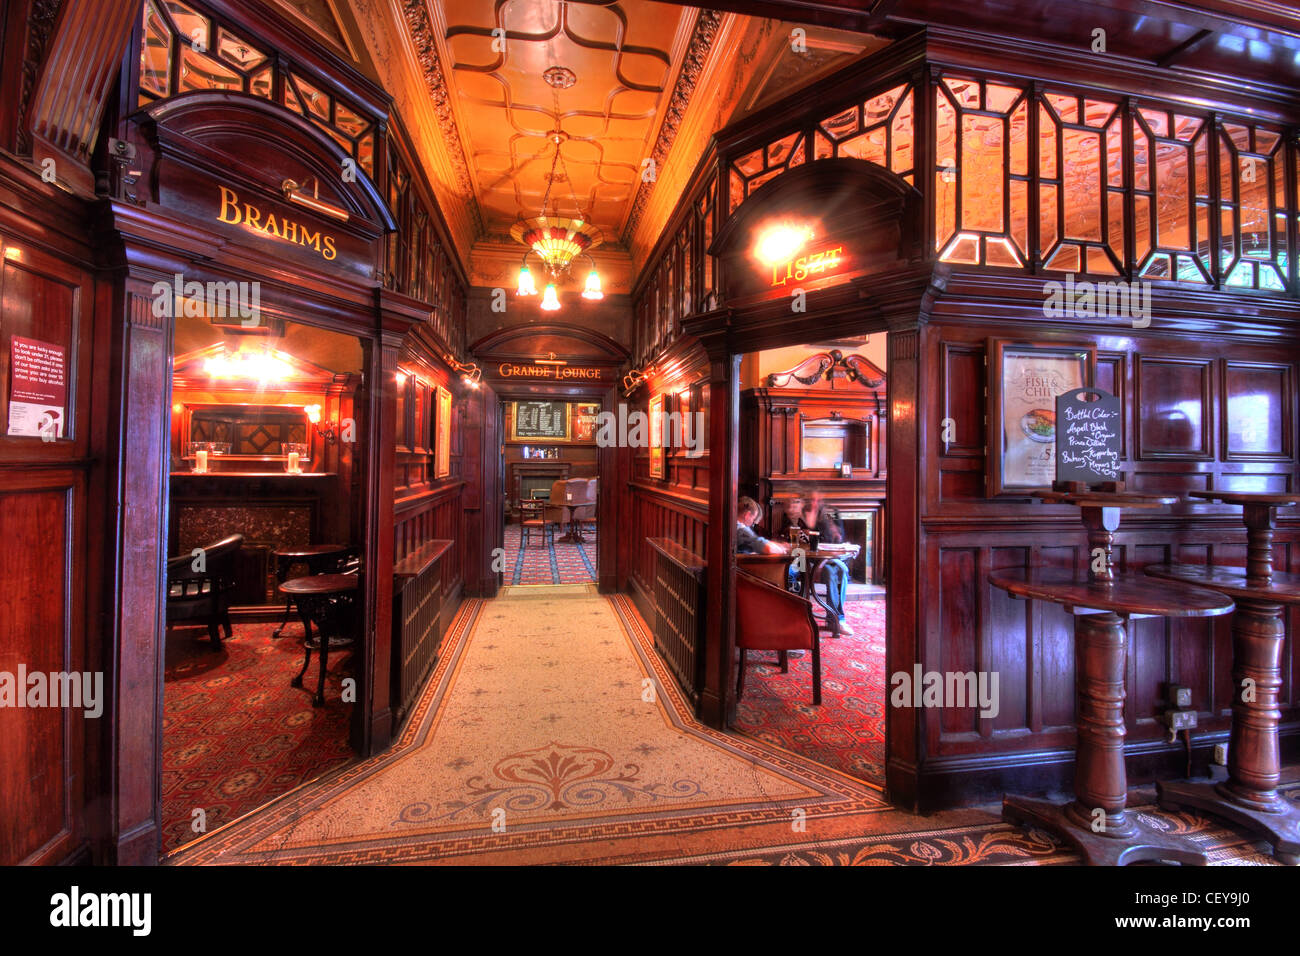 Liverpool Philharmonic Grand Foyer Bar : The famous phllharmonic pub in hope street liverpool